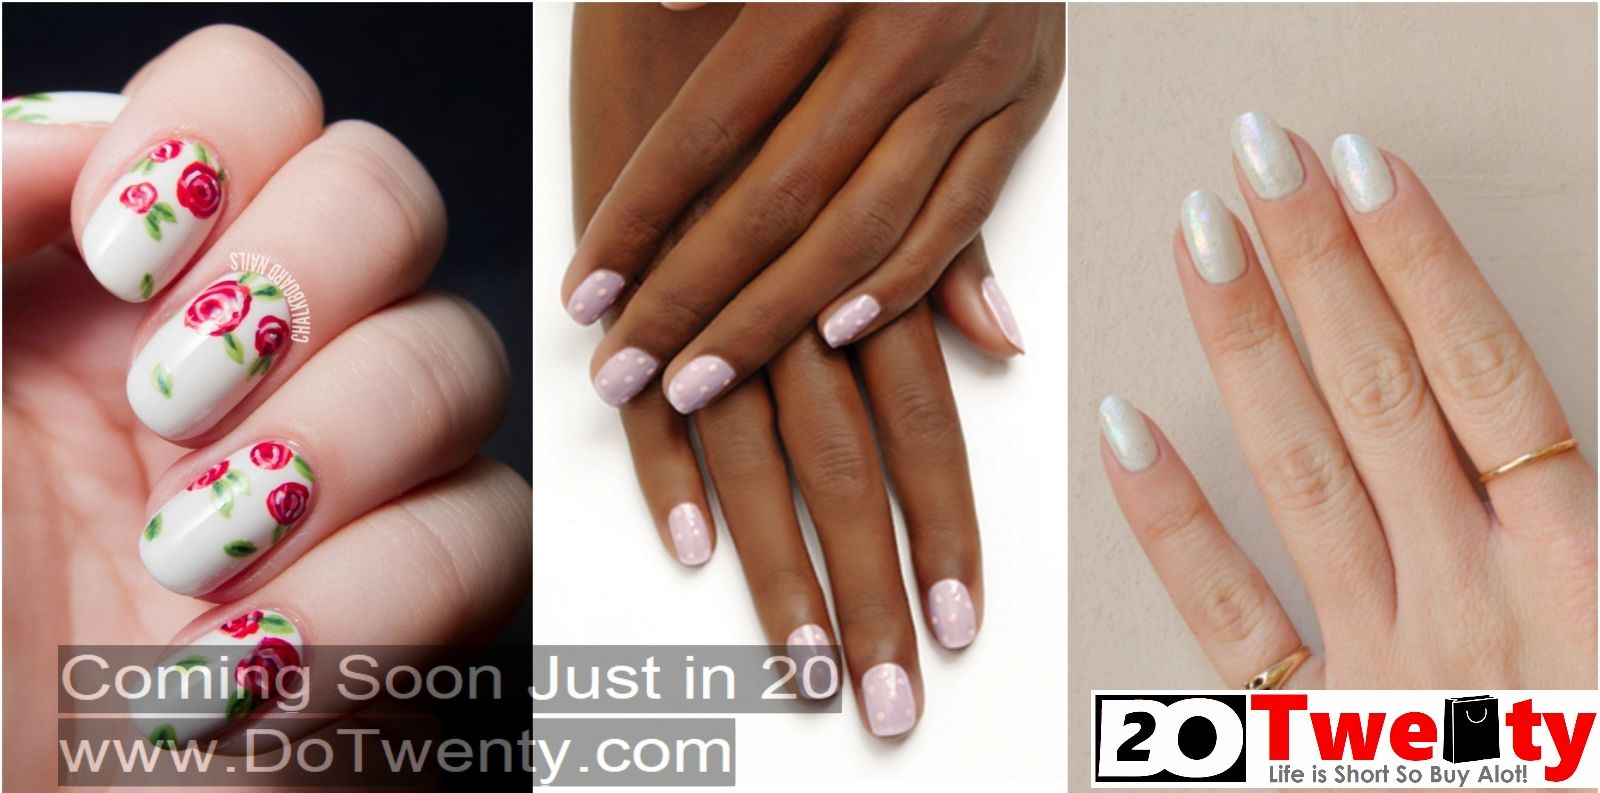 I Do Nails Whats Your Superpower Dotwenty Shopping Online Nail